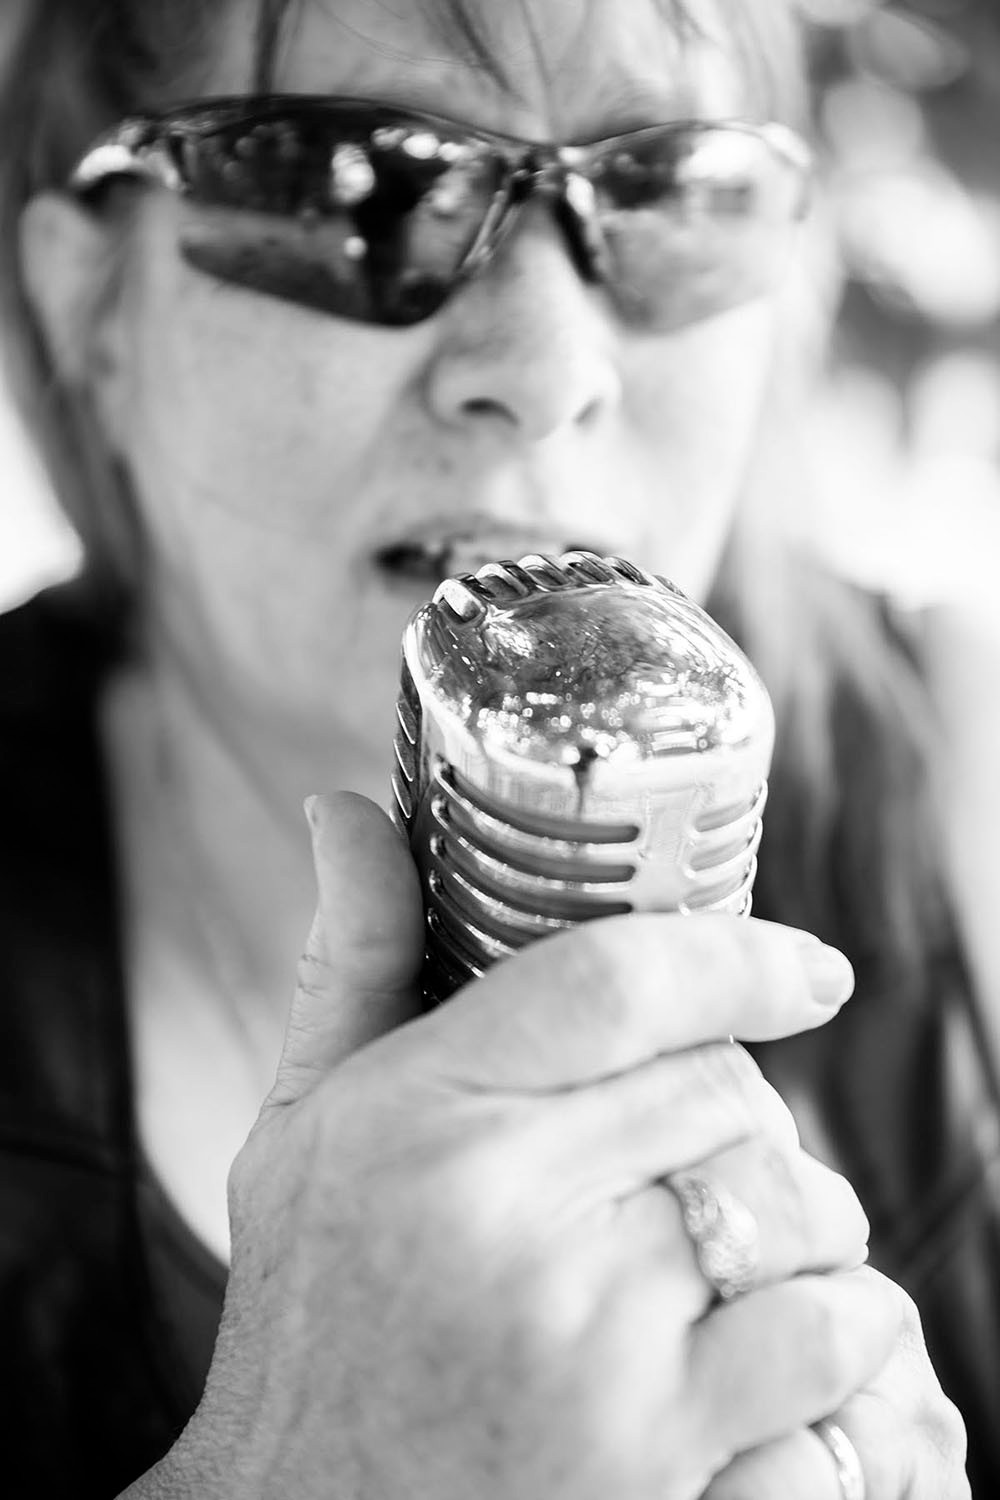 woman with sunglasses sings into classic chrome microphone